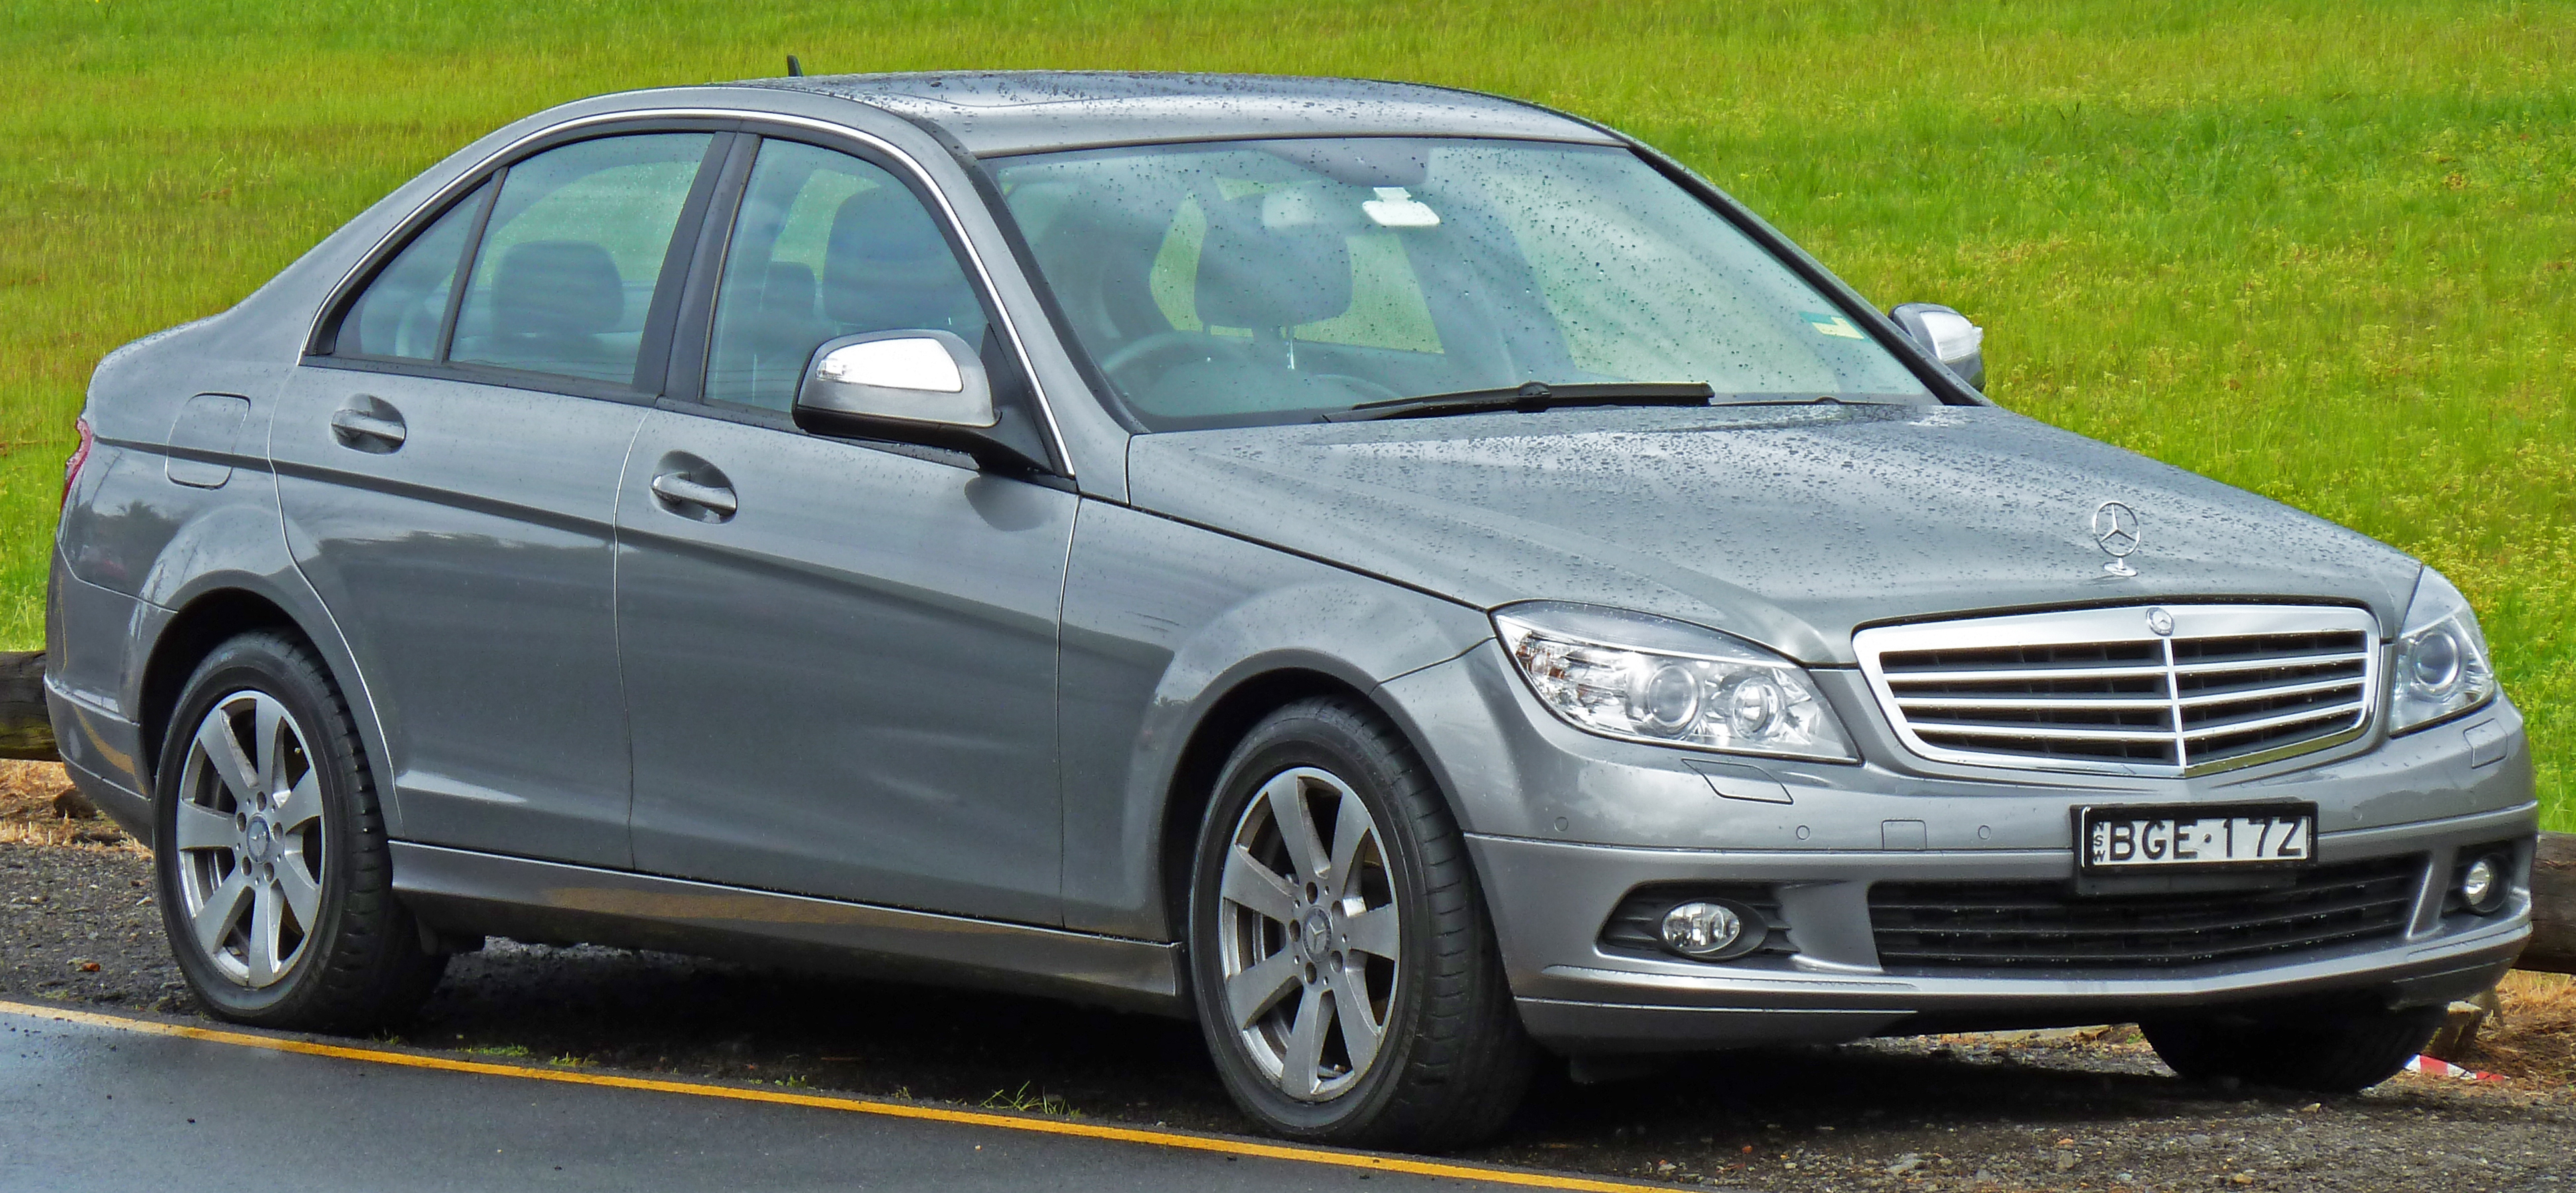 file:2008 mercedes-benz c 200 kompressor (w 204) classic sedan